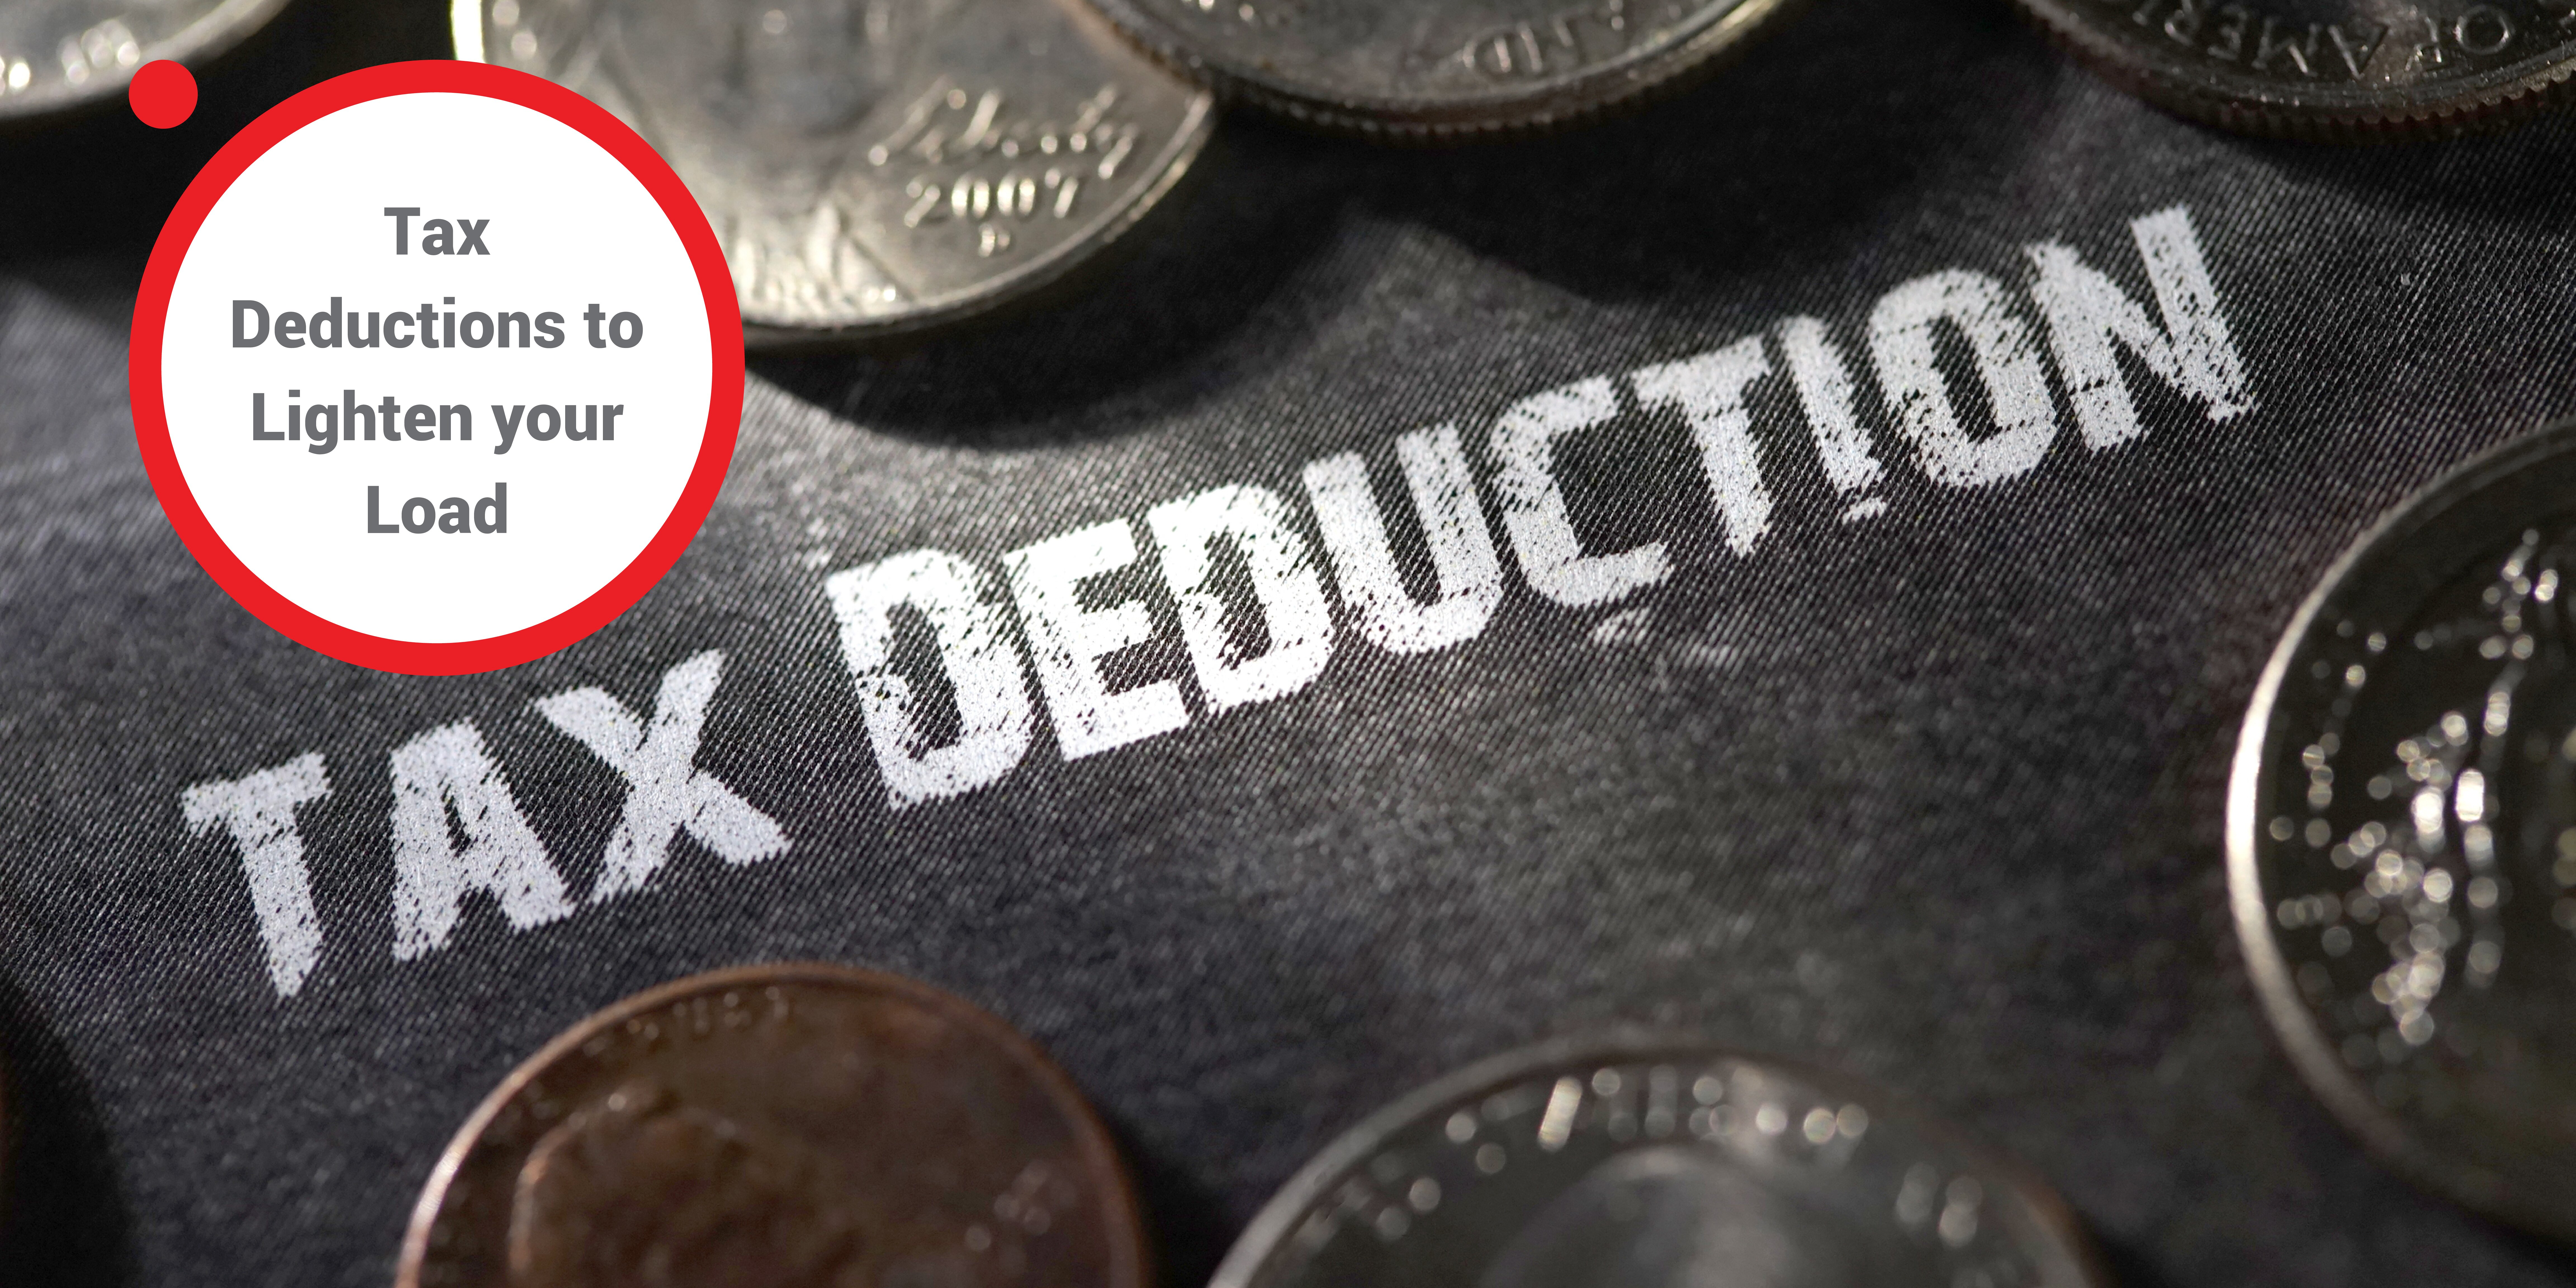 Tax Deductions to Lighten Your Load